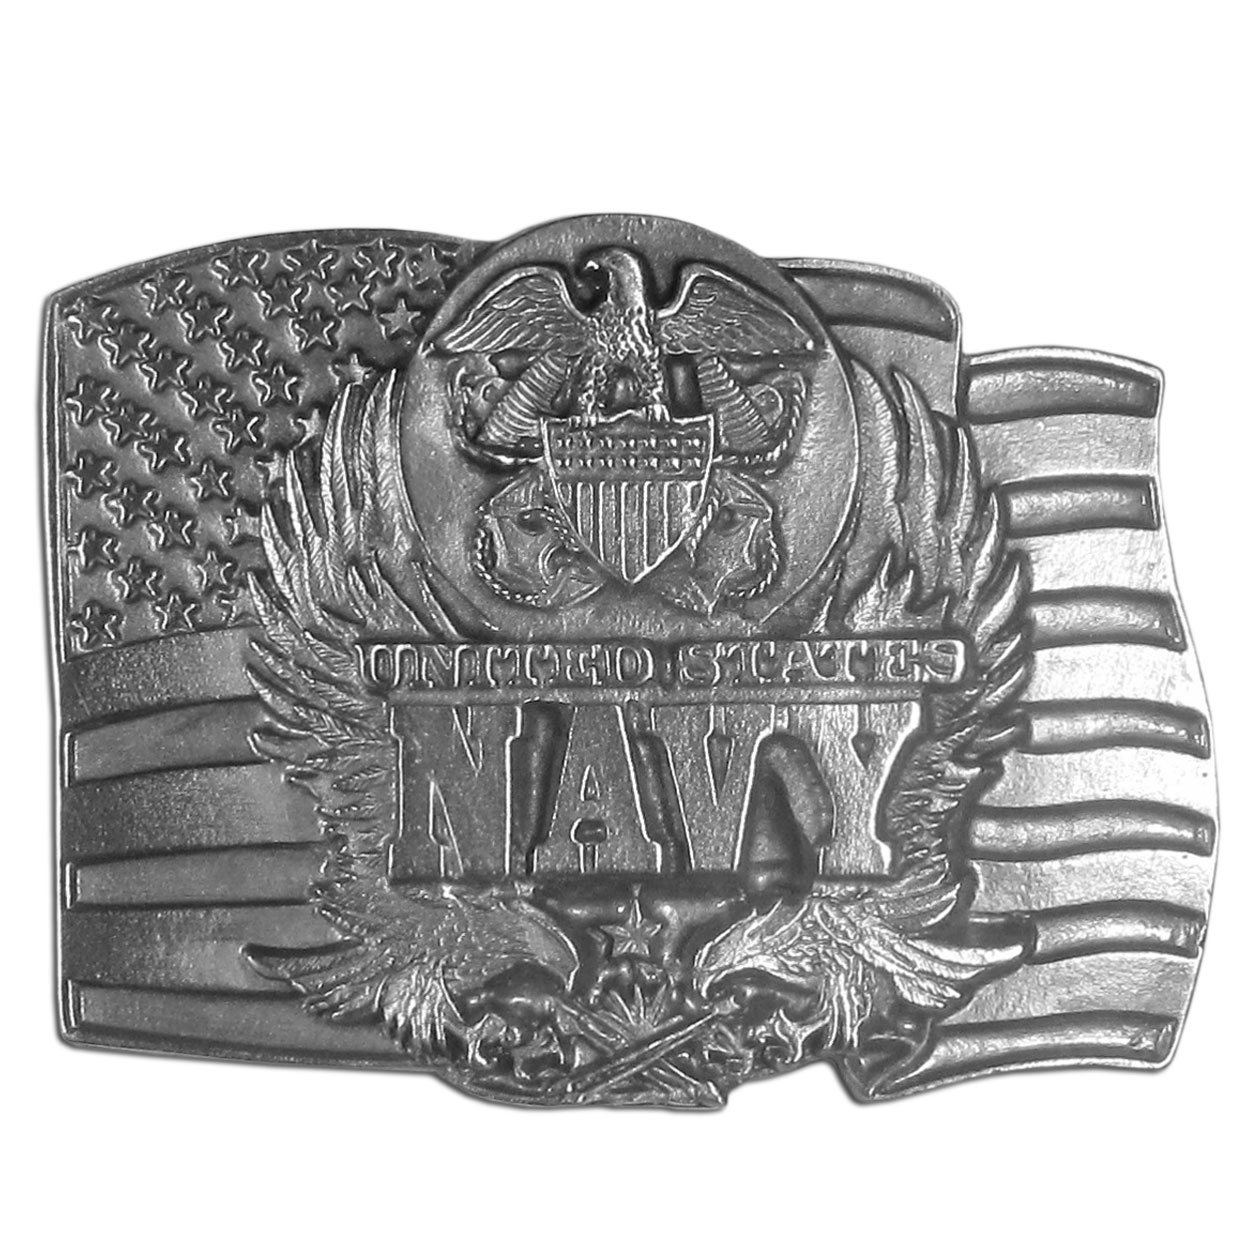 "Navy Seal on Flag Antiqued Belt Buckle - This belt buckle celebrates the Navy with the words ""United States Navy"" written in bold across the center with an American flag, the Navy seal and eagles.  On the back are the words, ""The Navy was established in 1775.  Today the U.S. Navy is second to none as the most powerful navy in the world.""  This exquisitely carved buckle is made of fully cast metal with a standard bale that fits up to 2inch belts."